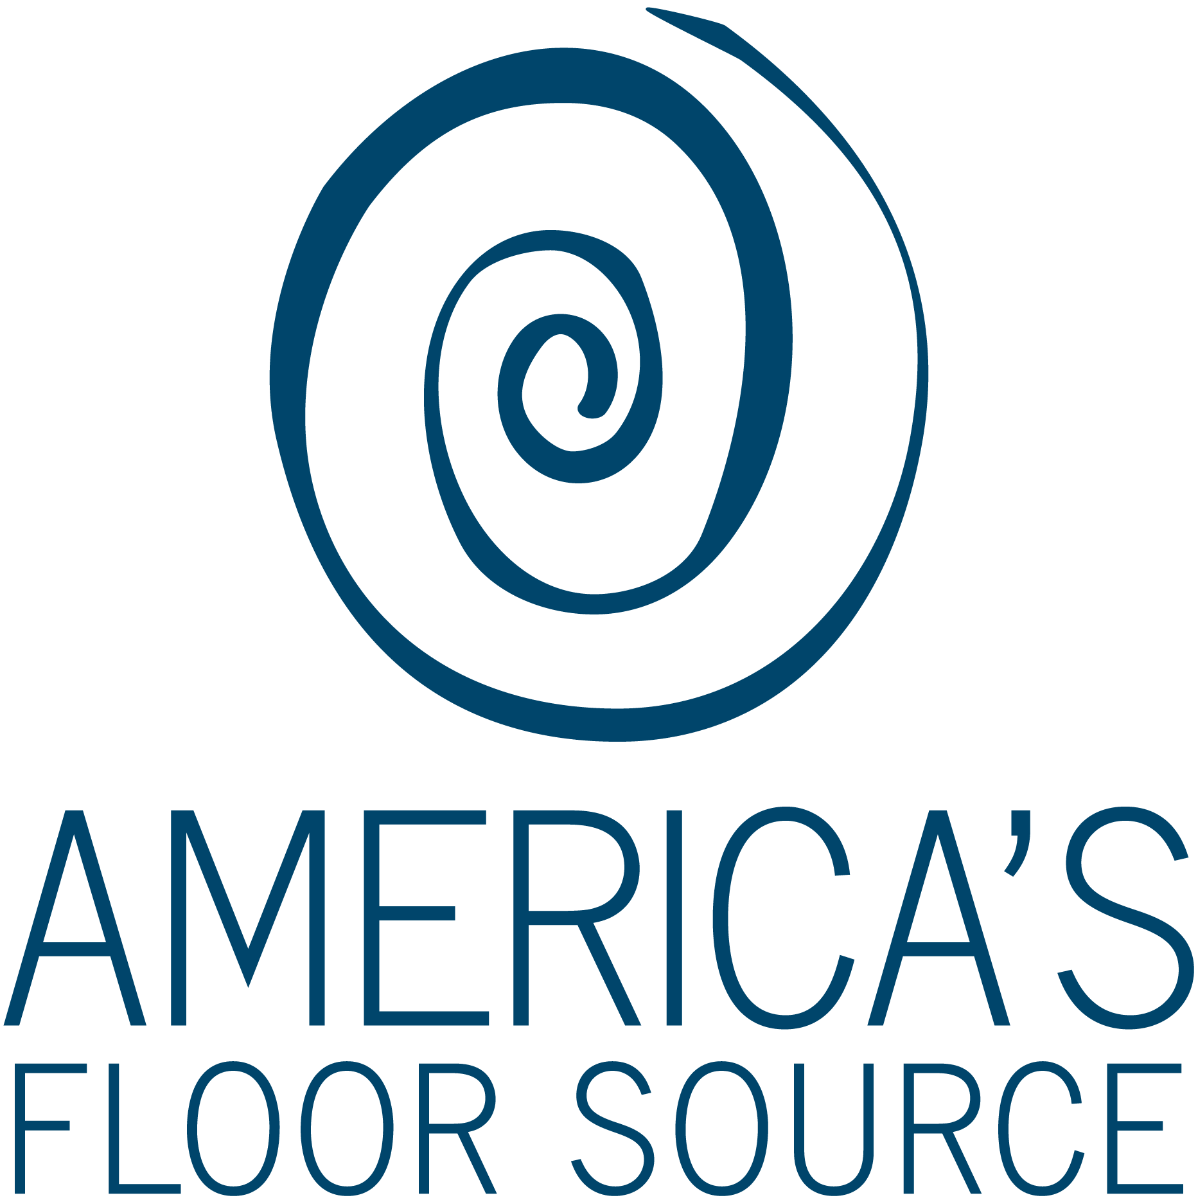 America's Floor Source